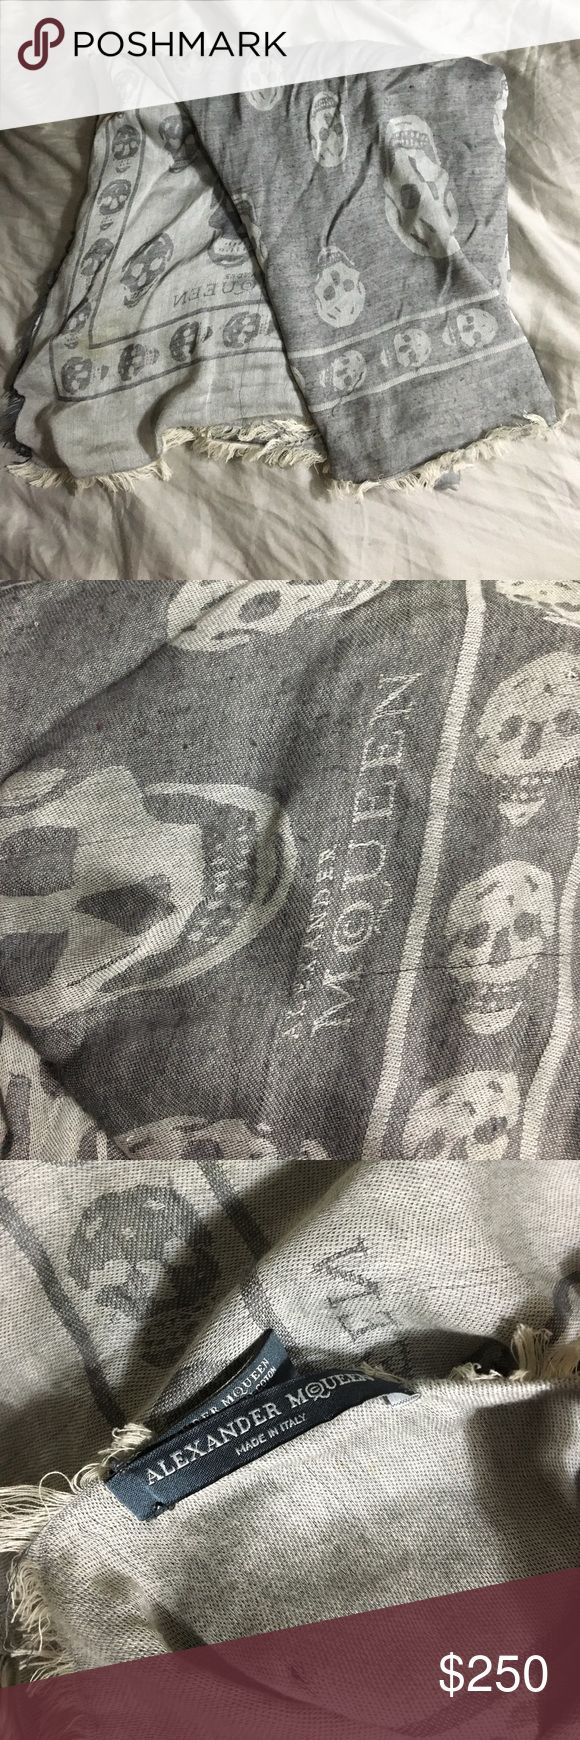 Alexander McQueen Skull Scarf Grey Large Cotton Viscose Pashmina Scarf Alexander McQueen Accessories Scarves & Wraps